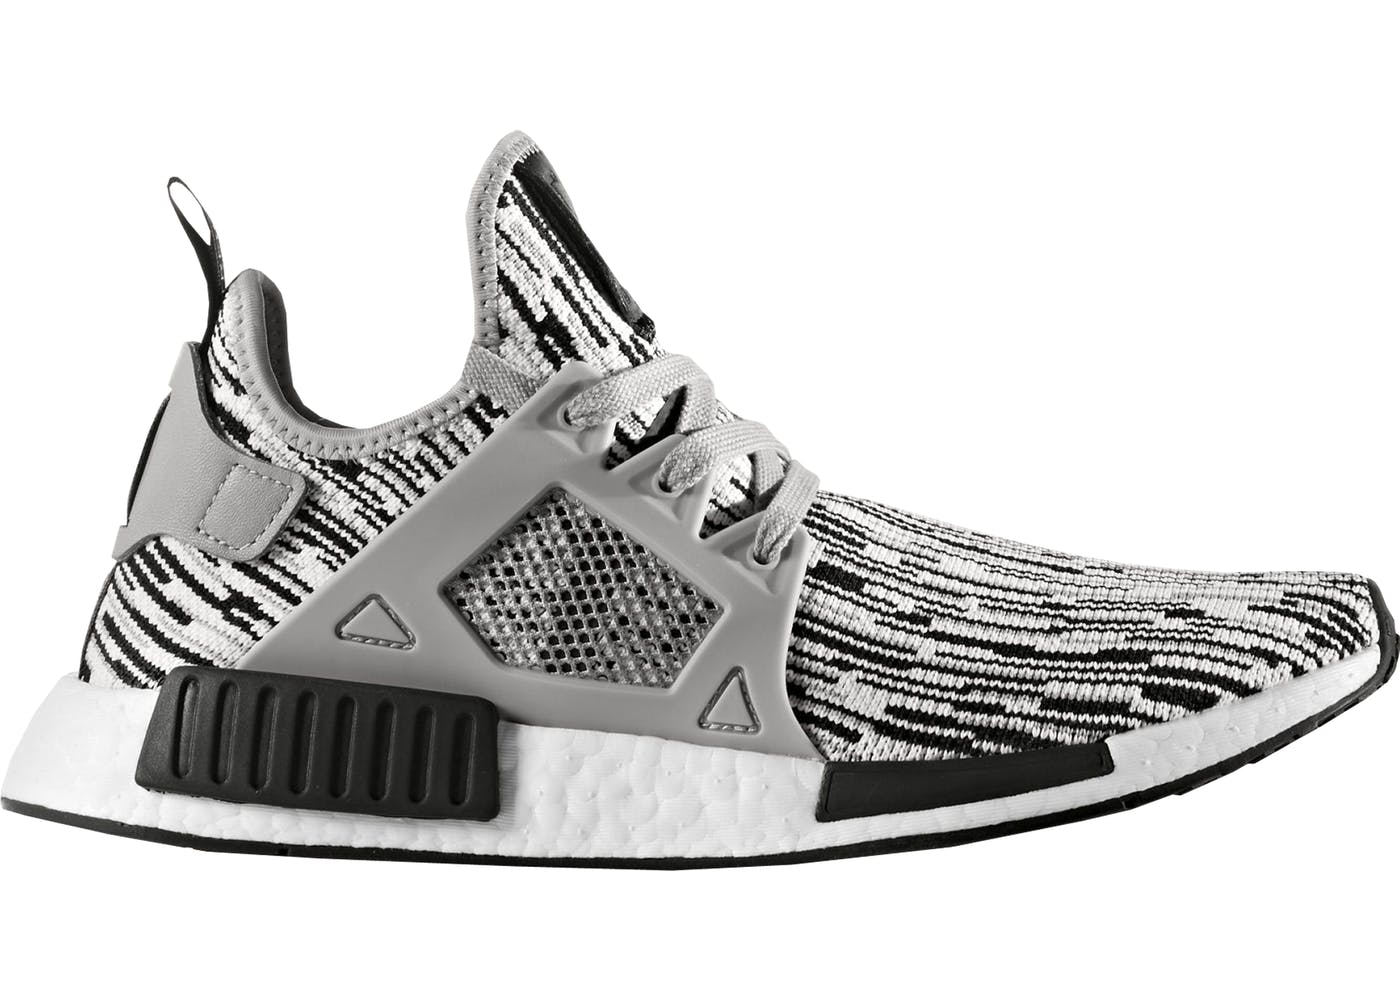 Adidas NMD XR1 Black Grey Glitch Camo Men's Size 9